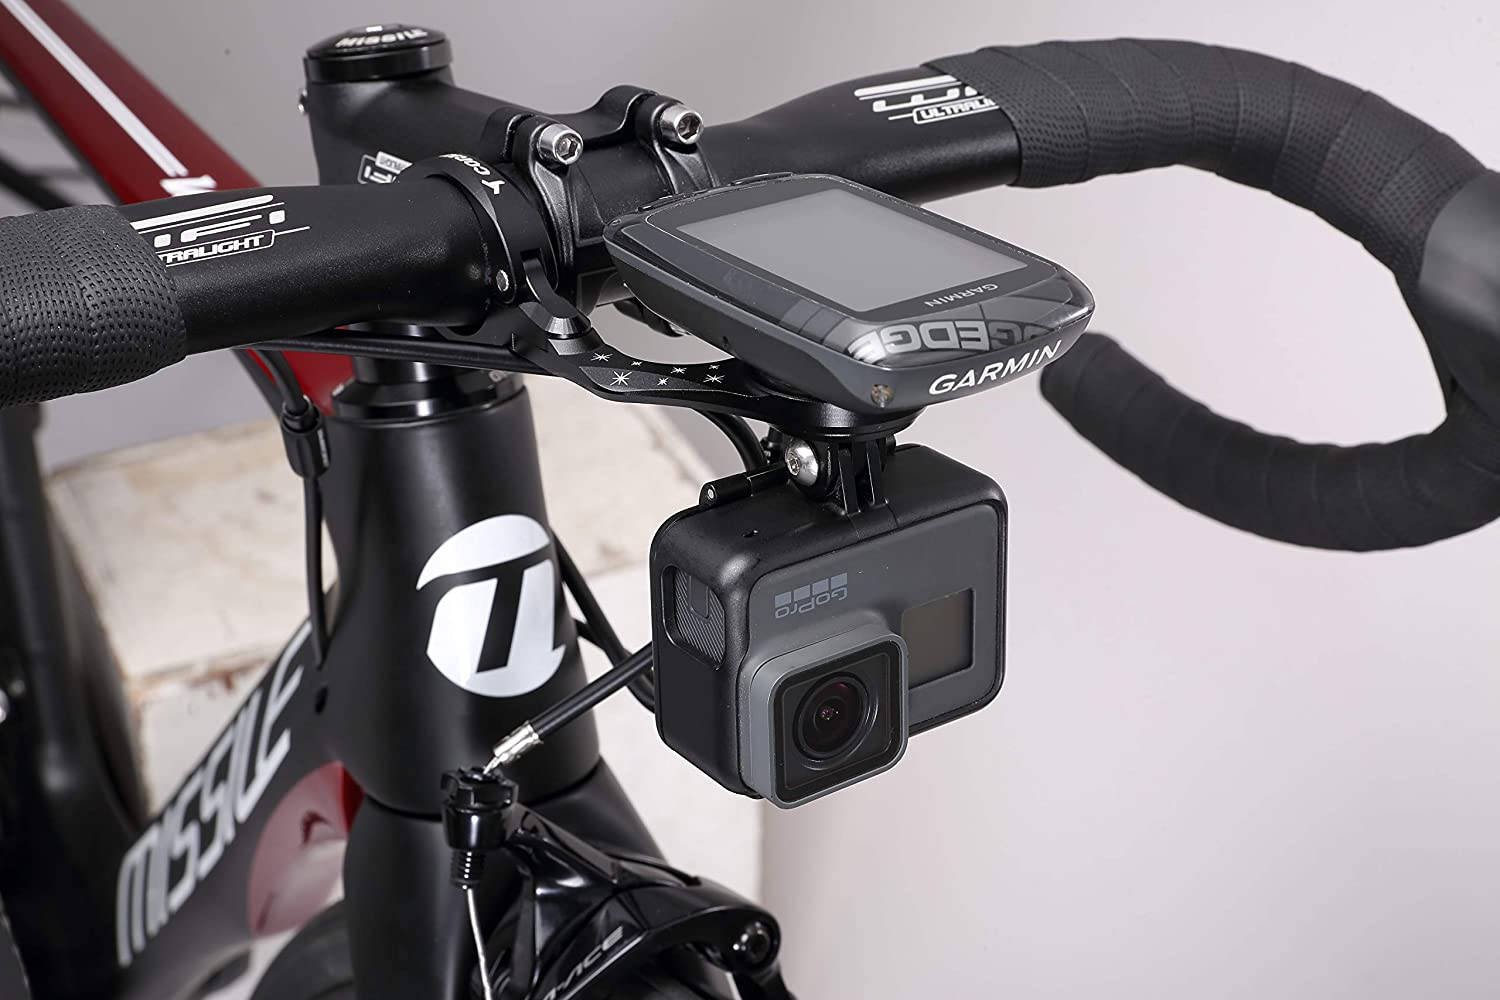 Garmin Bike Mount, Best Tek Garmin Gopro Combo Mount, Manillar ...